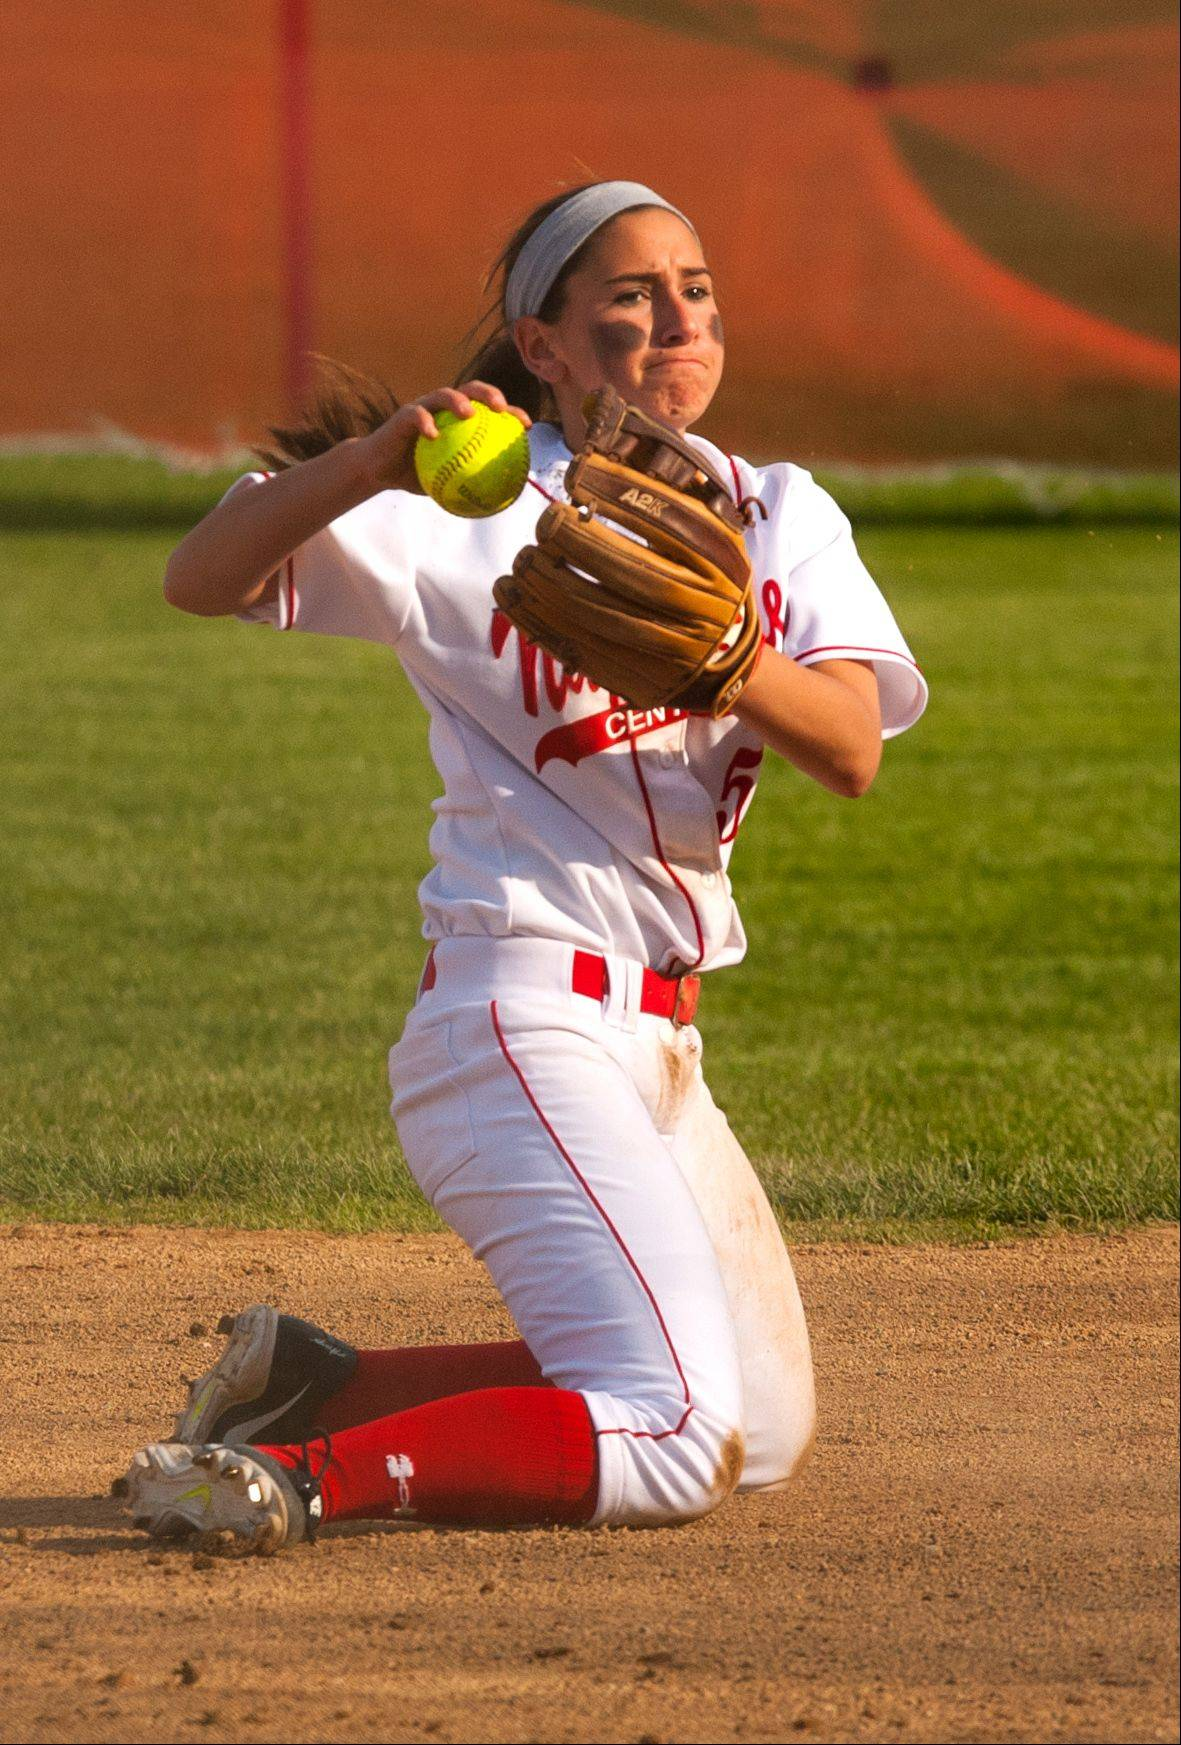 Daniel White/dwhite@dailyherald.comNaperville Central's Lindsey Gonzalez throws out a Naperville North batter, during girls softball action.